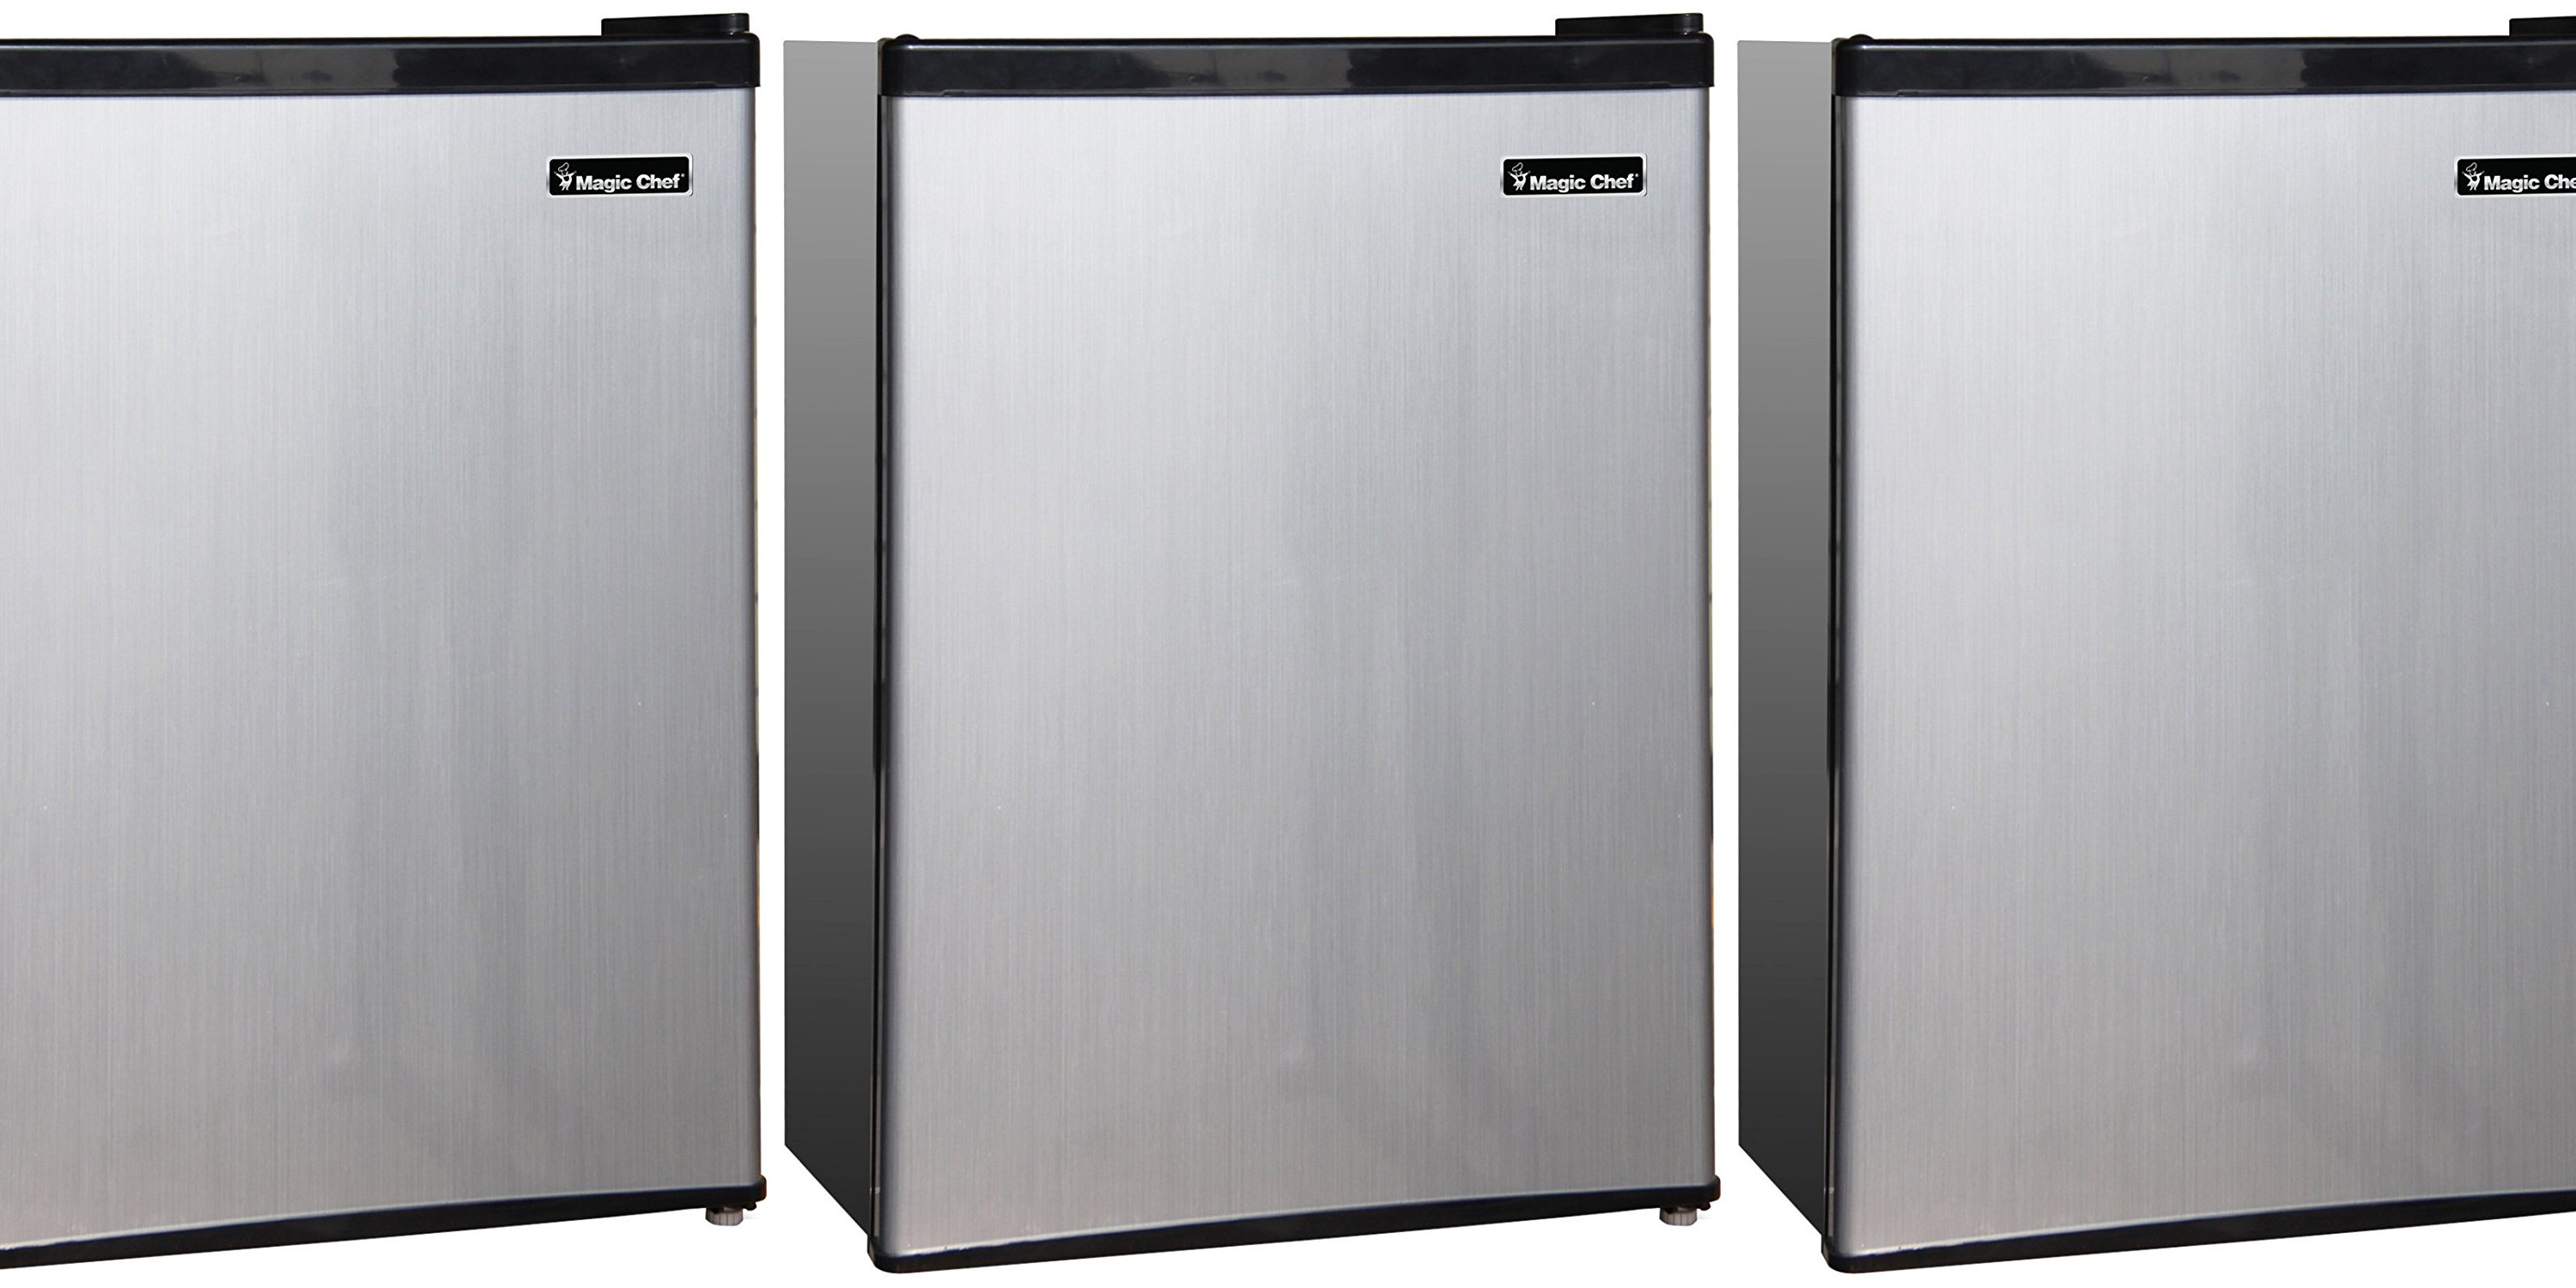 magic-chef-refrigerator-2